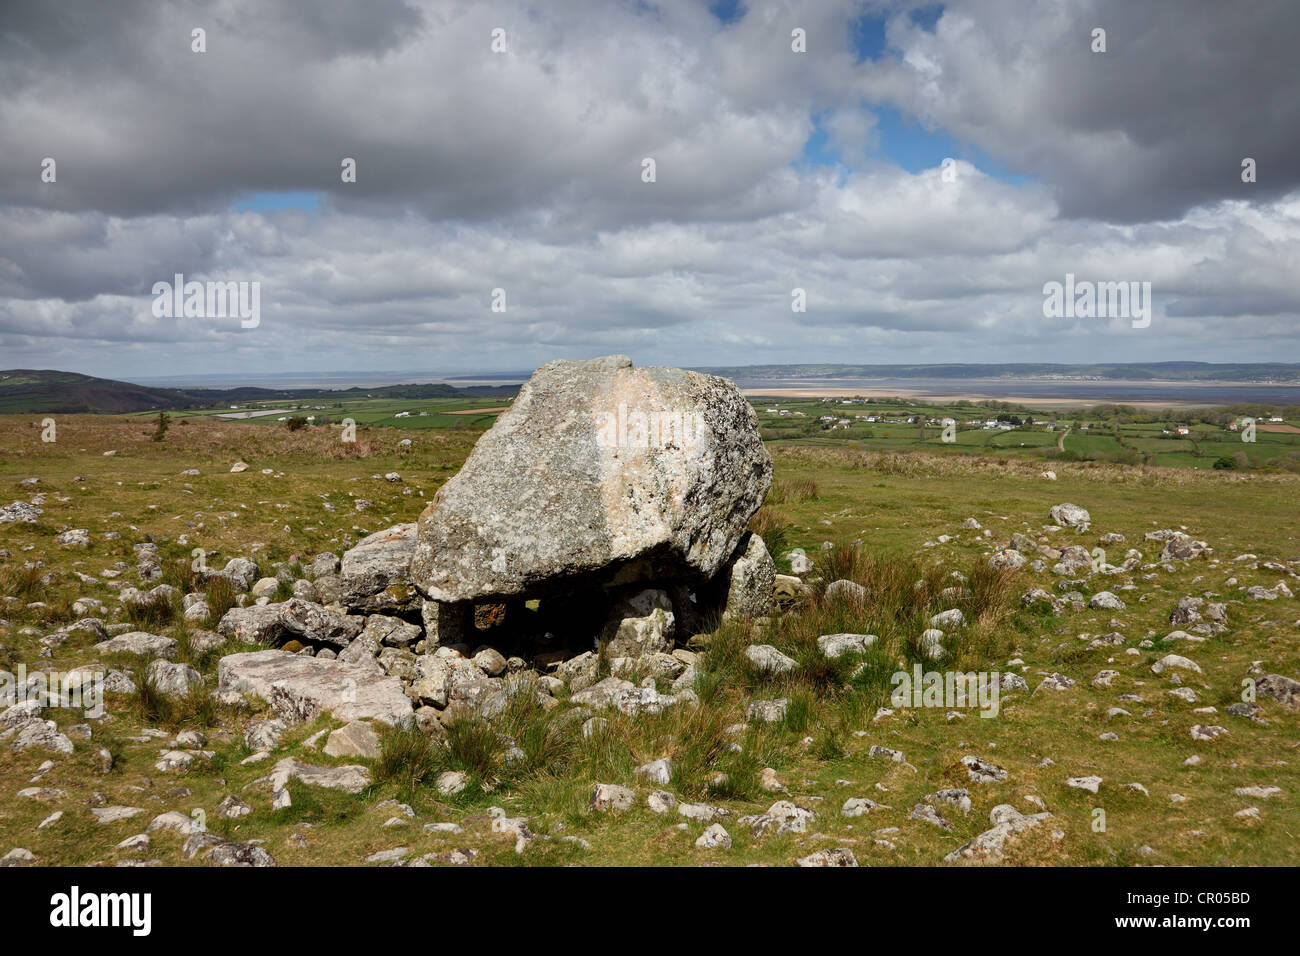 Arthur's Stone Burial Chamber Gower Wales UK - Stock Image